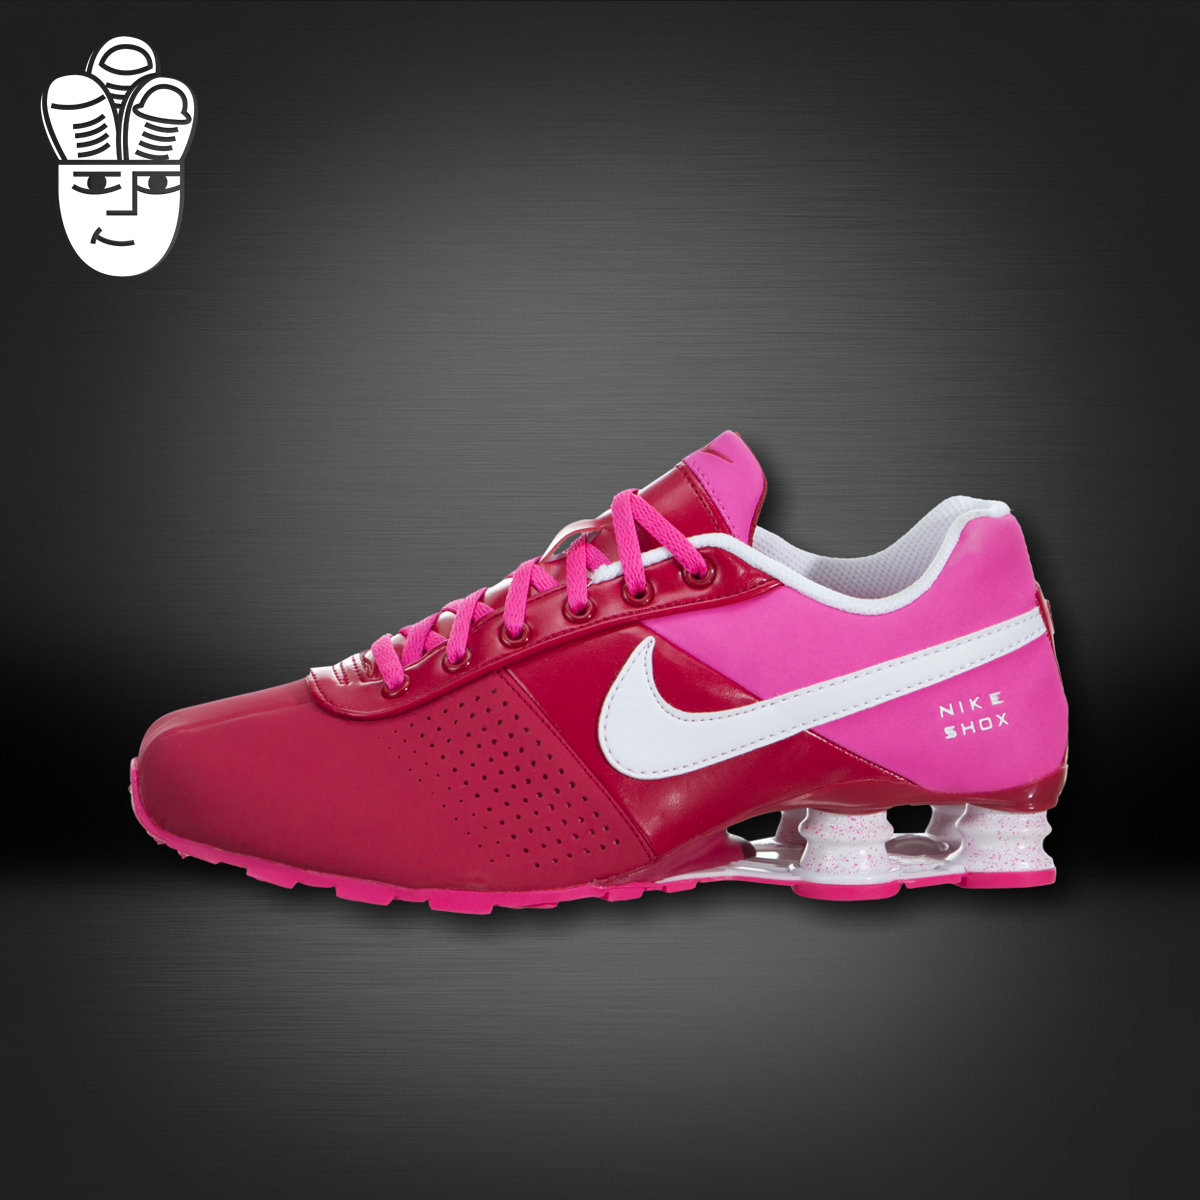 best service 74456 90e99 Get Quotations · Nike nike shox pnt deliver high column gs men and women  running shoes casual shoes